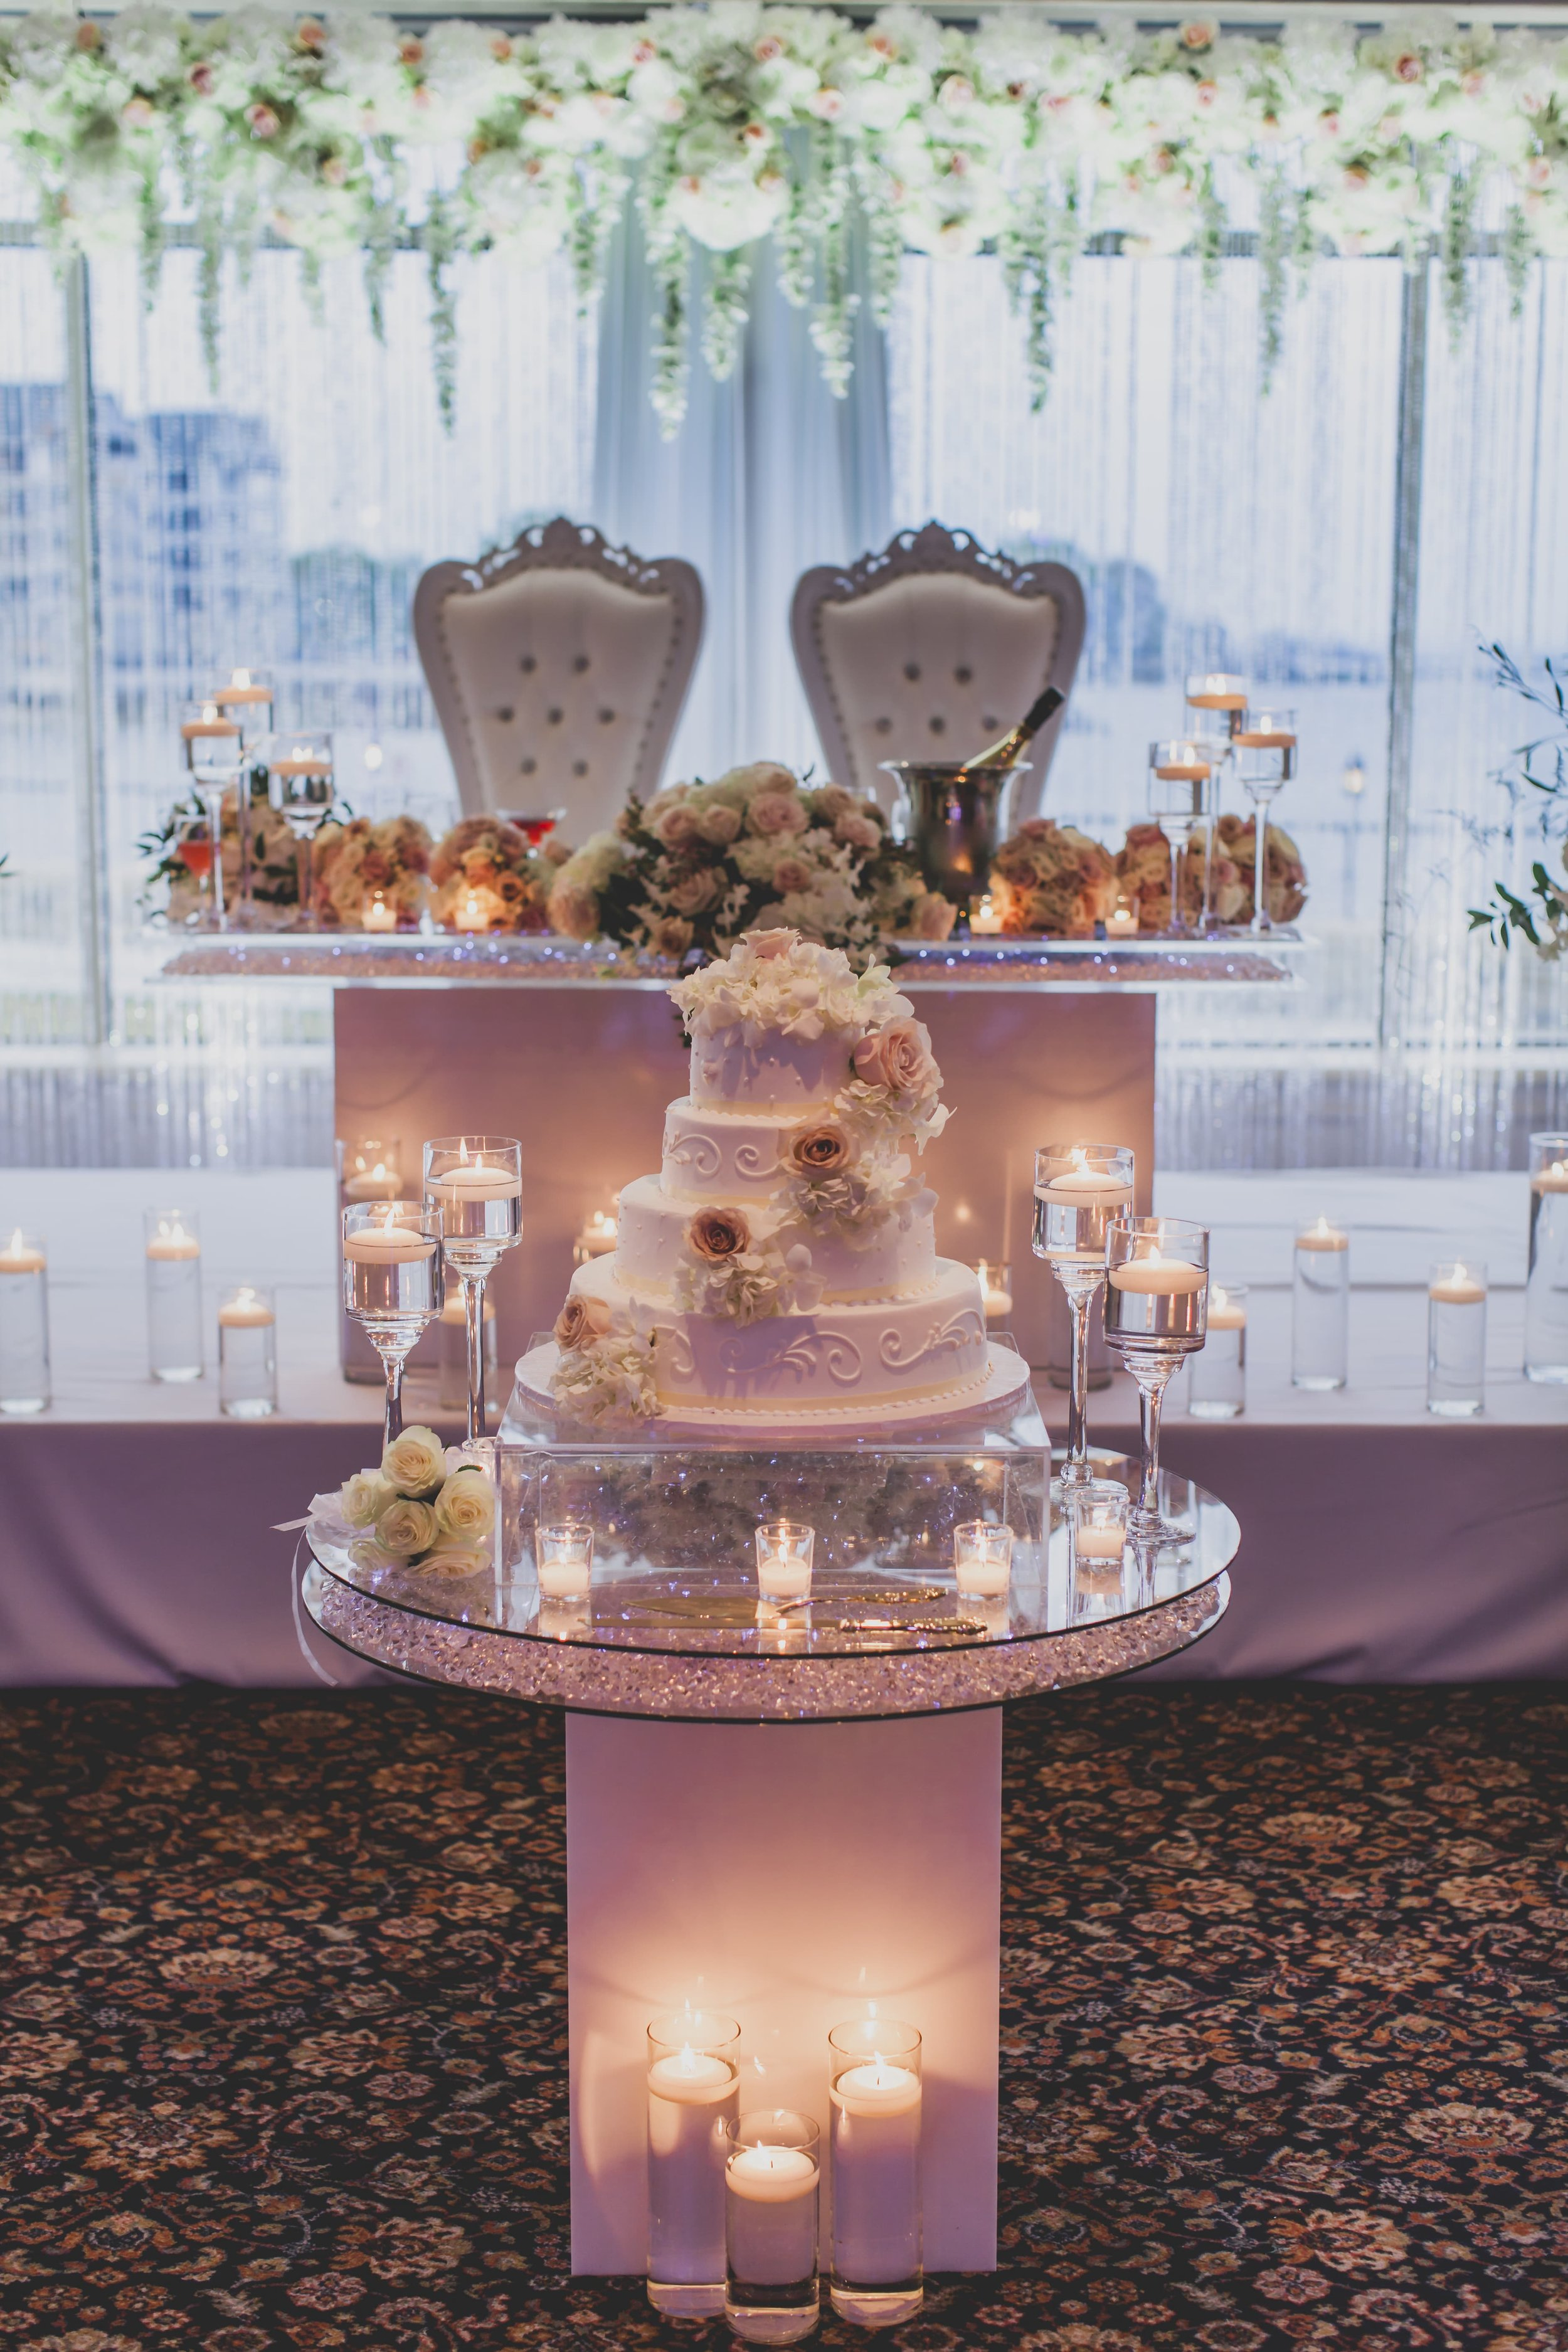 A flowered wedding cake on a glass table surrounded by floating candles.